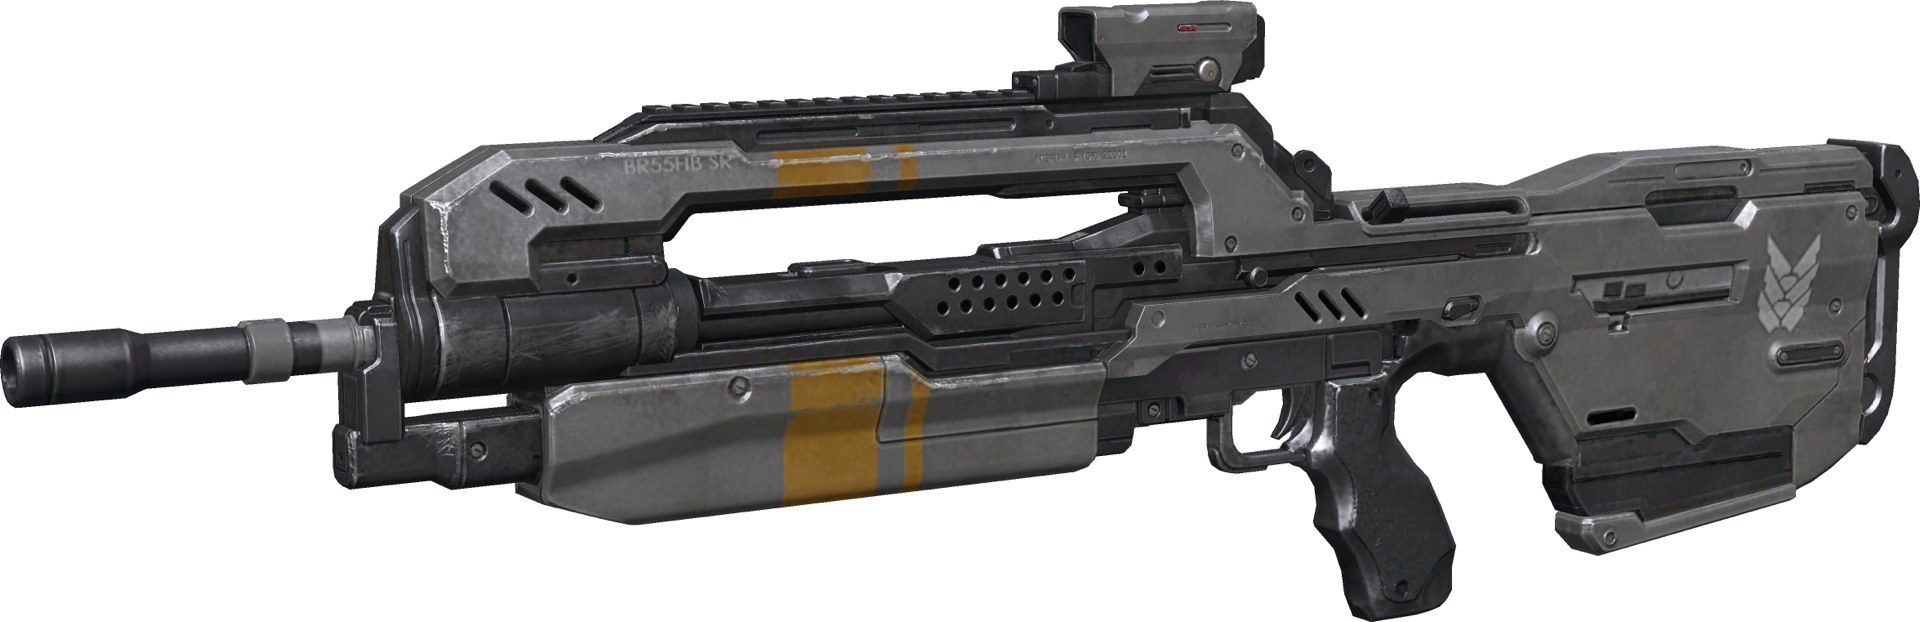 Halo 4 Battle rifle